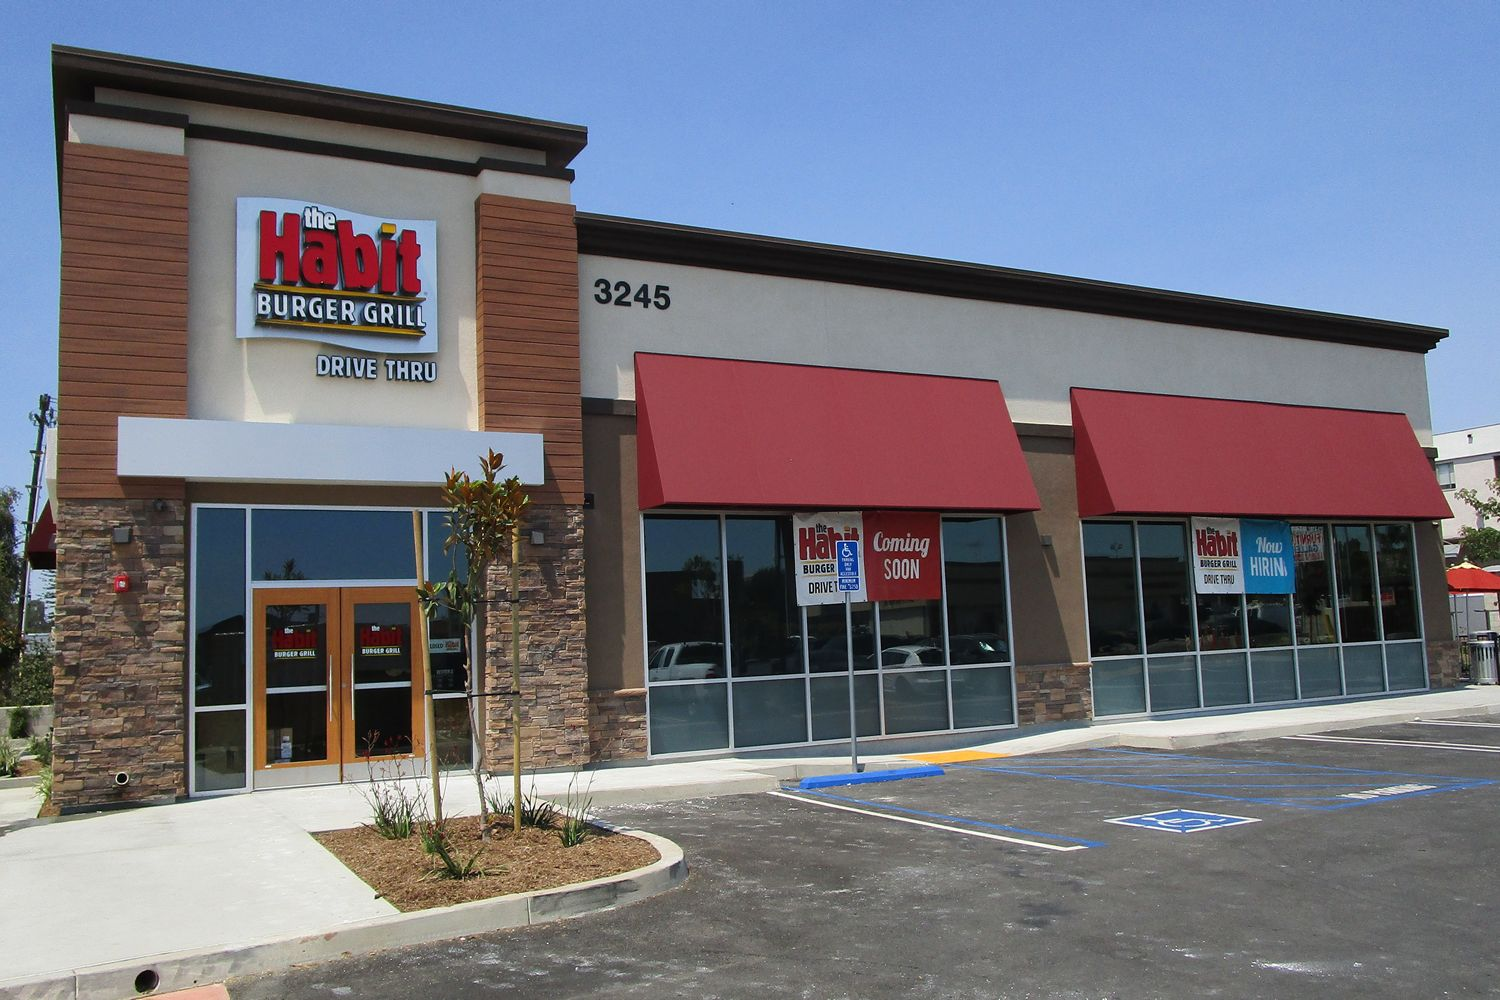 New Habit Burger Grill With Double Drive-Thru Opens in Inglewood, CA